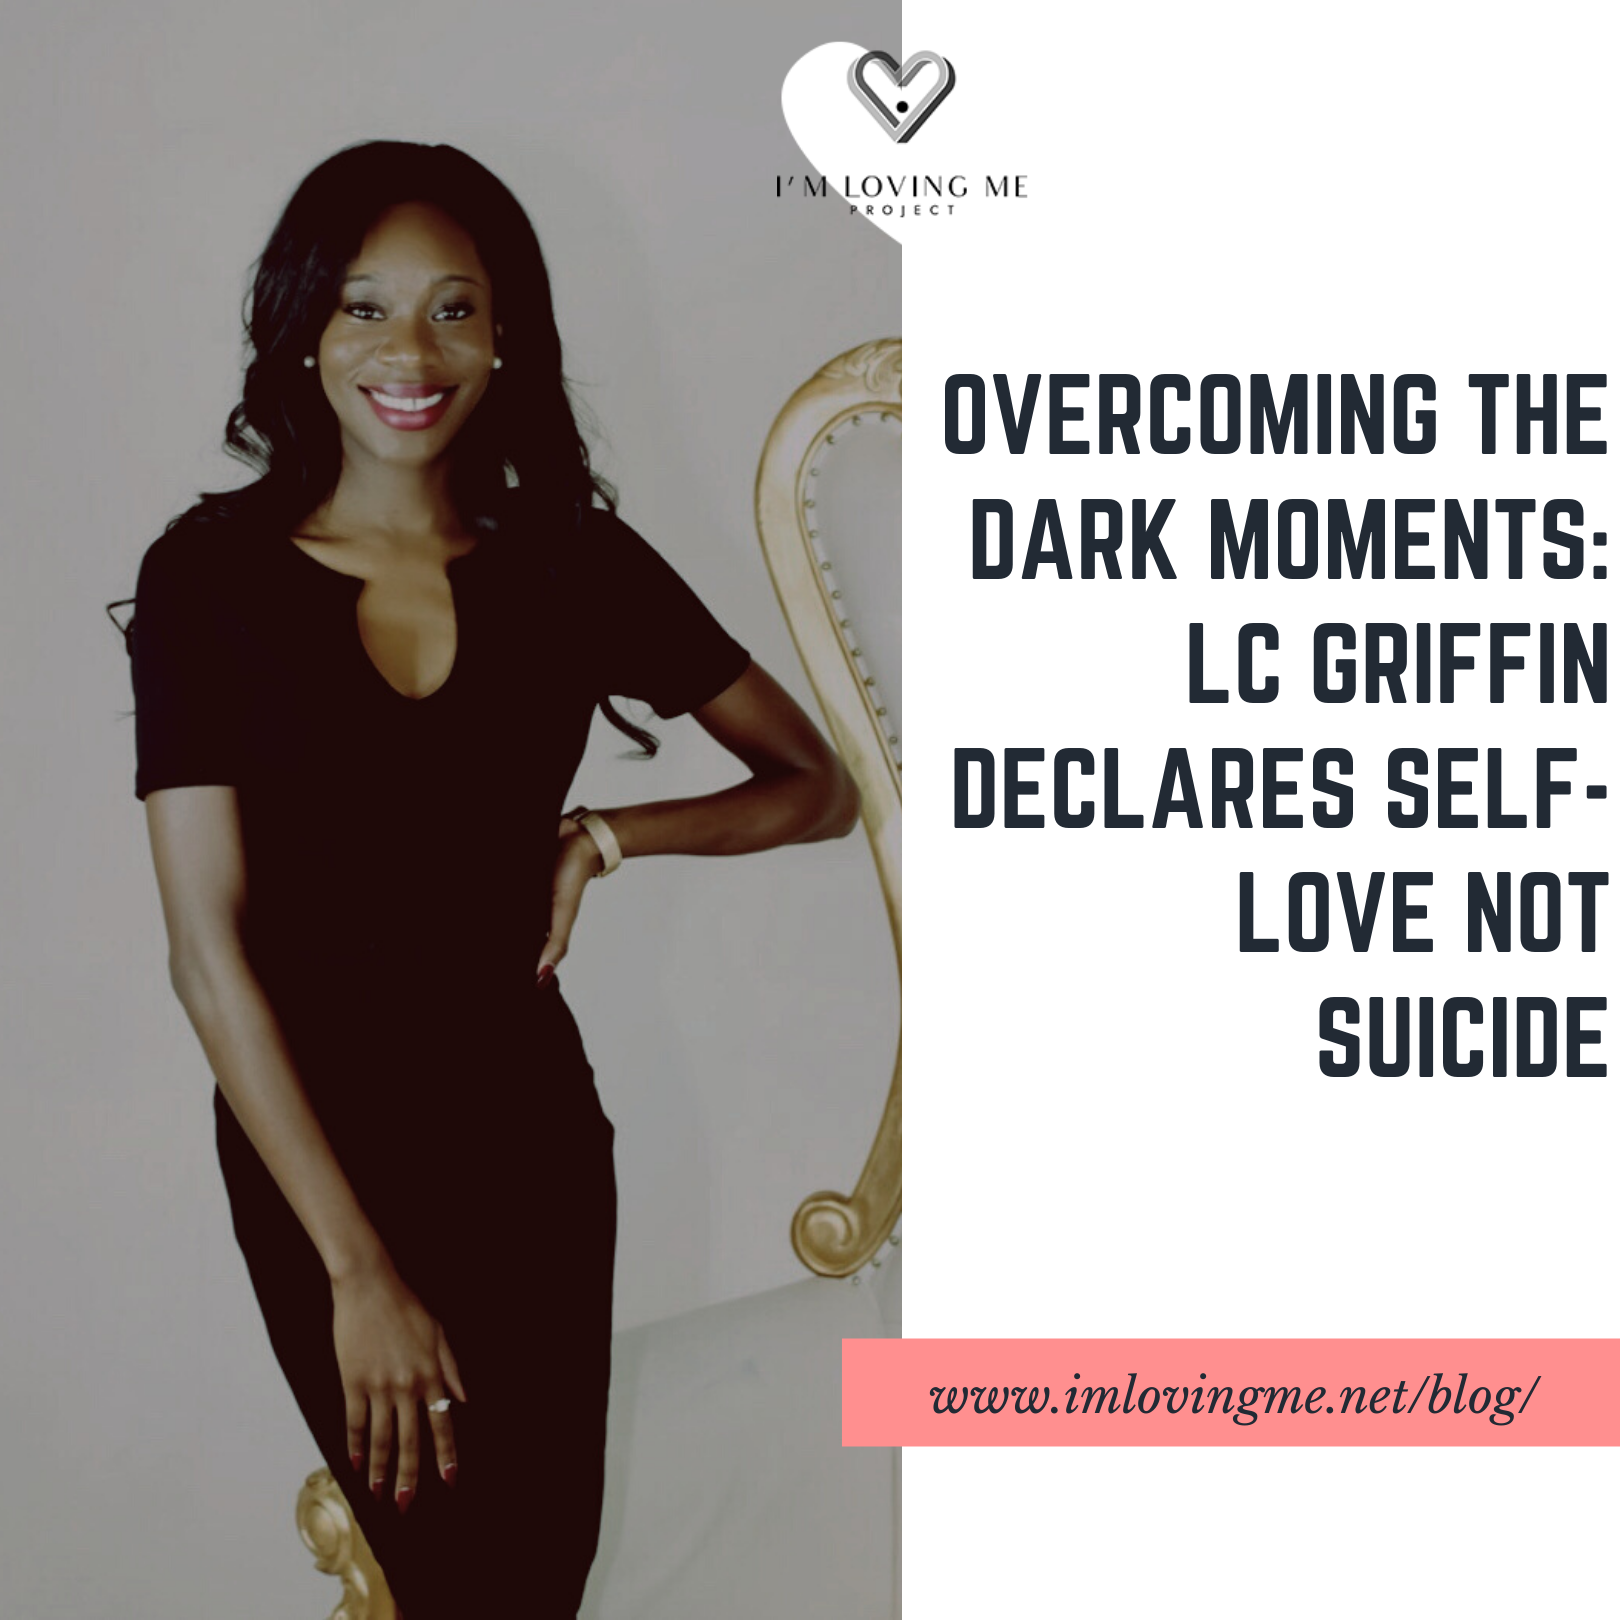 Overcoming the Dark Moments: Self-Love Over Suicide